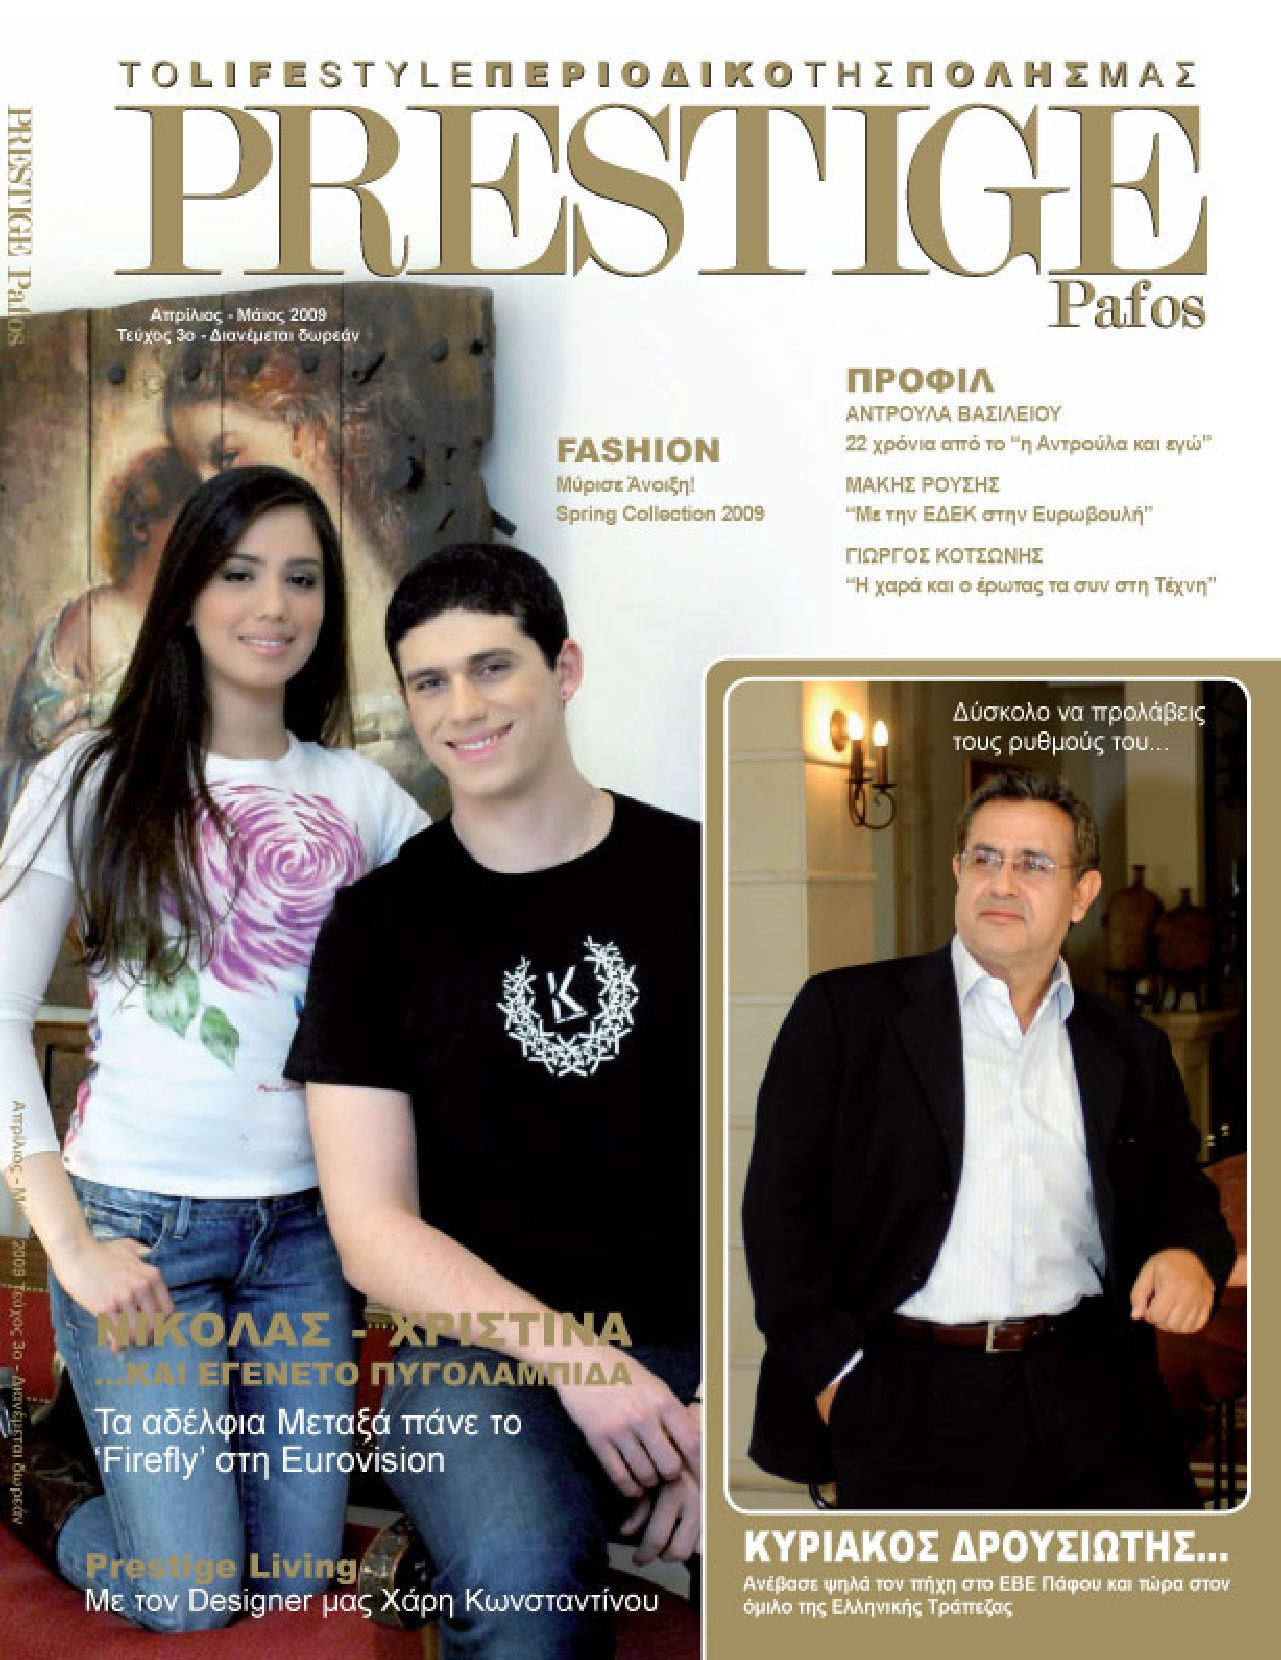 401431fc9c6d Prestige Magazine April - May 2009 by Enigma Global - issuu